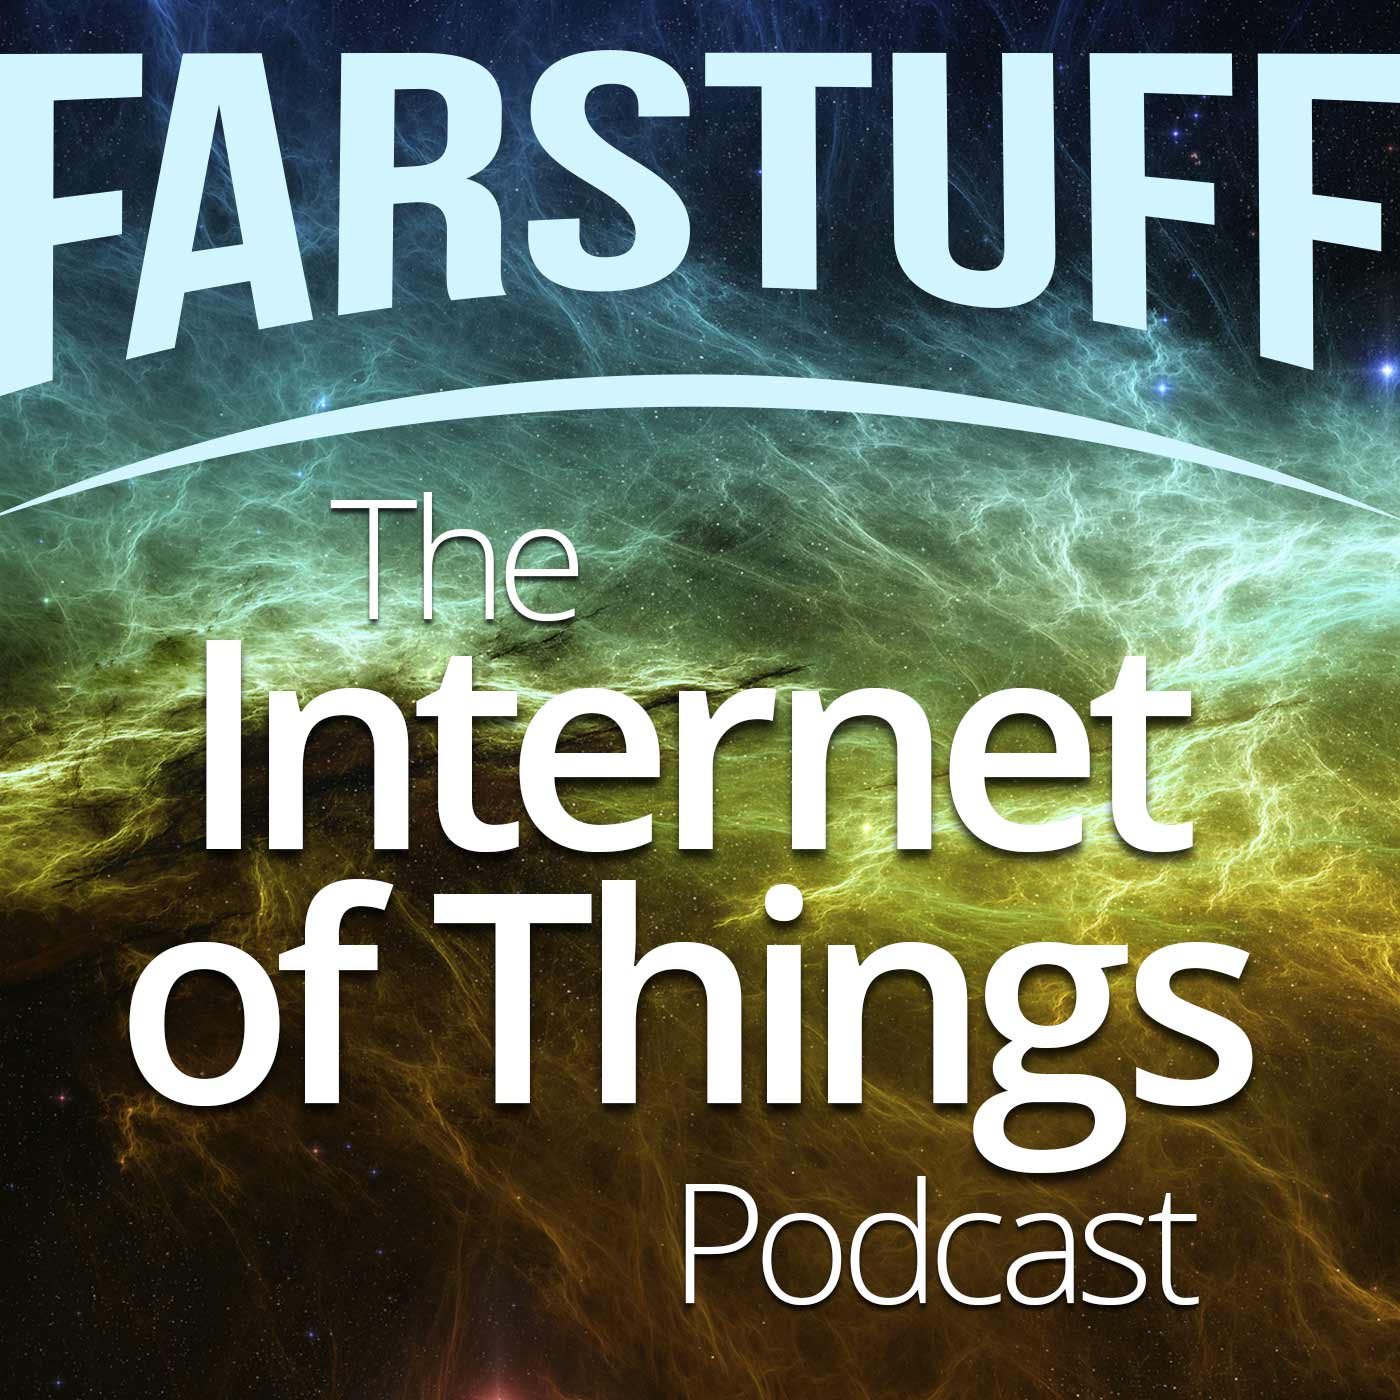 Farstuff: The Internet of Things Podcast